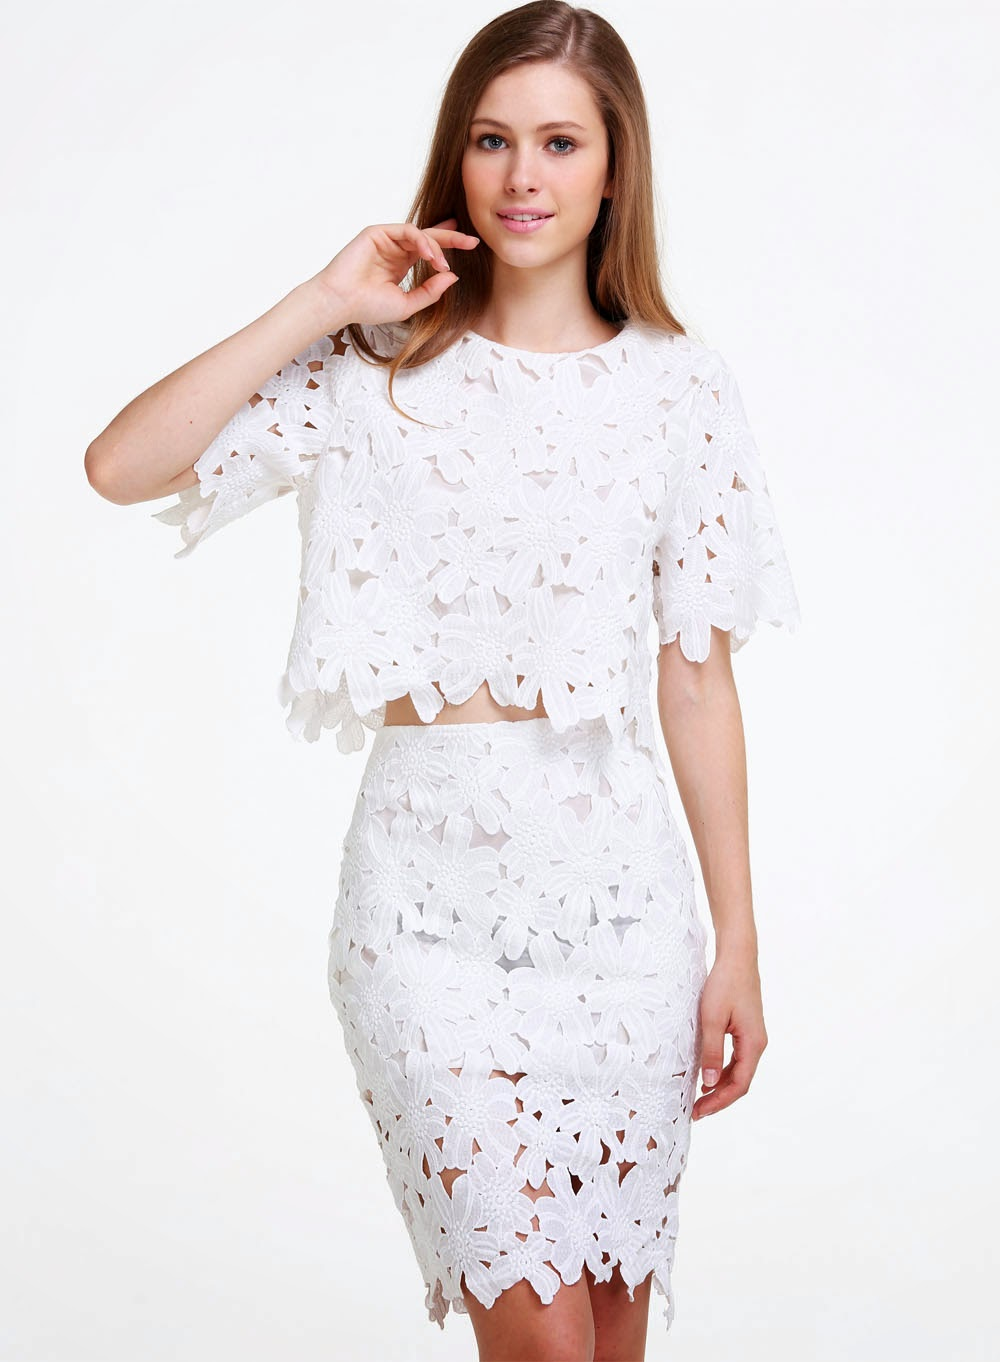 http://www.sheinside.com/White-Short-Sleeve-Crochet-Crop-T-shirt-p-174758-cat-1738.html?aff_id=1347